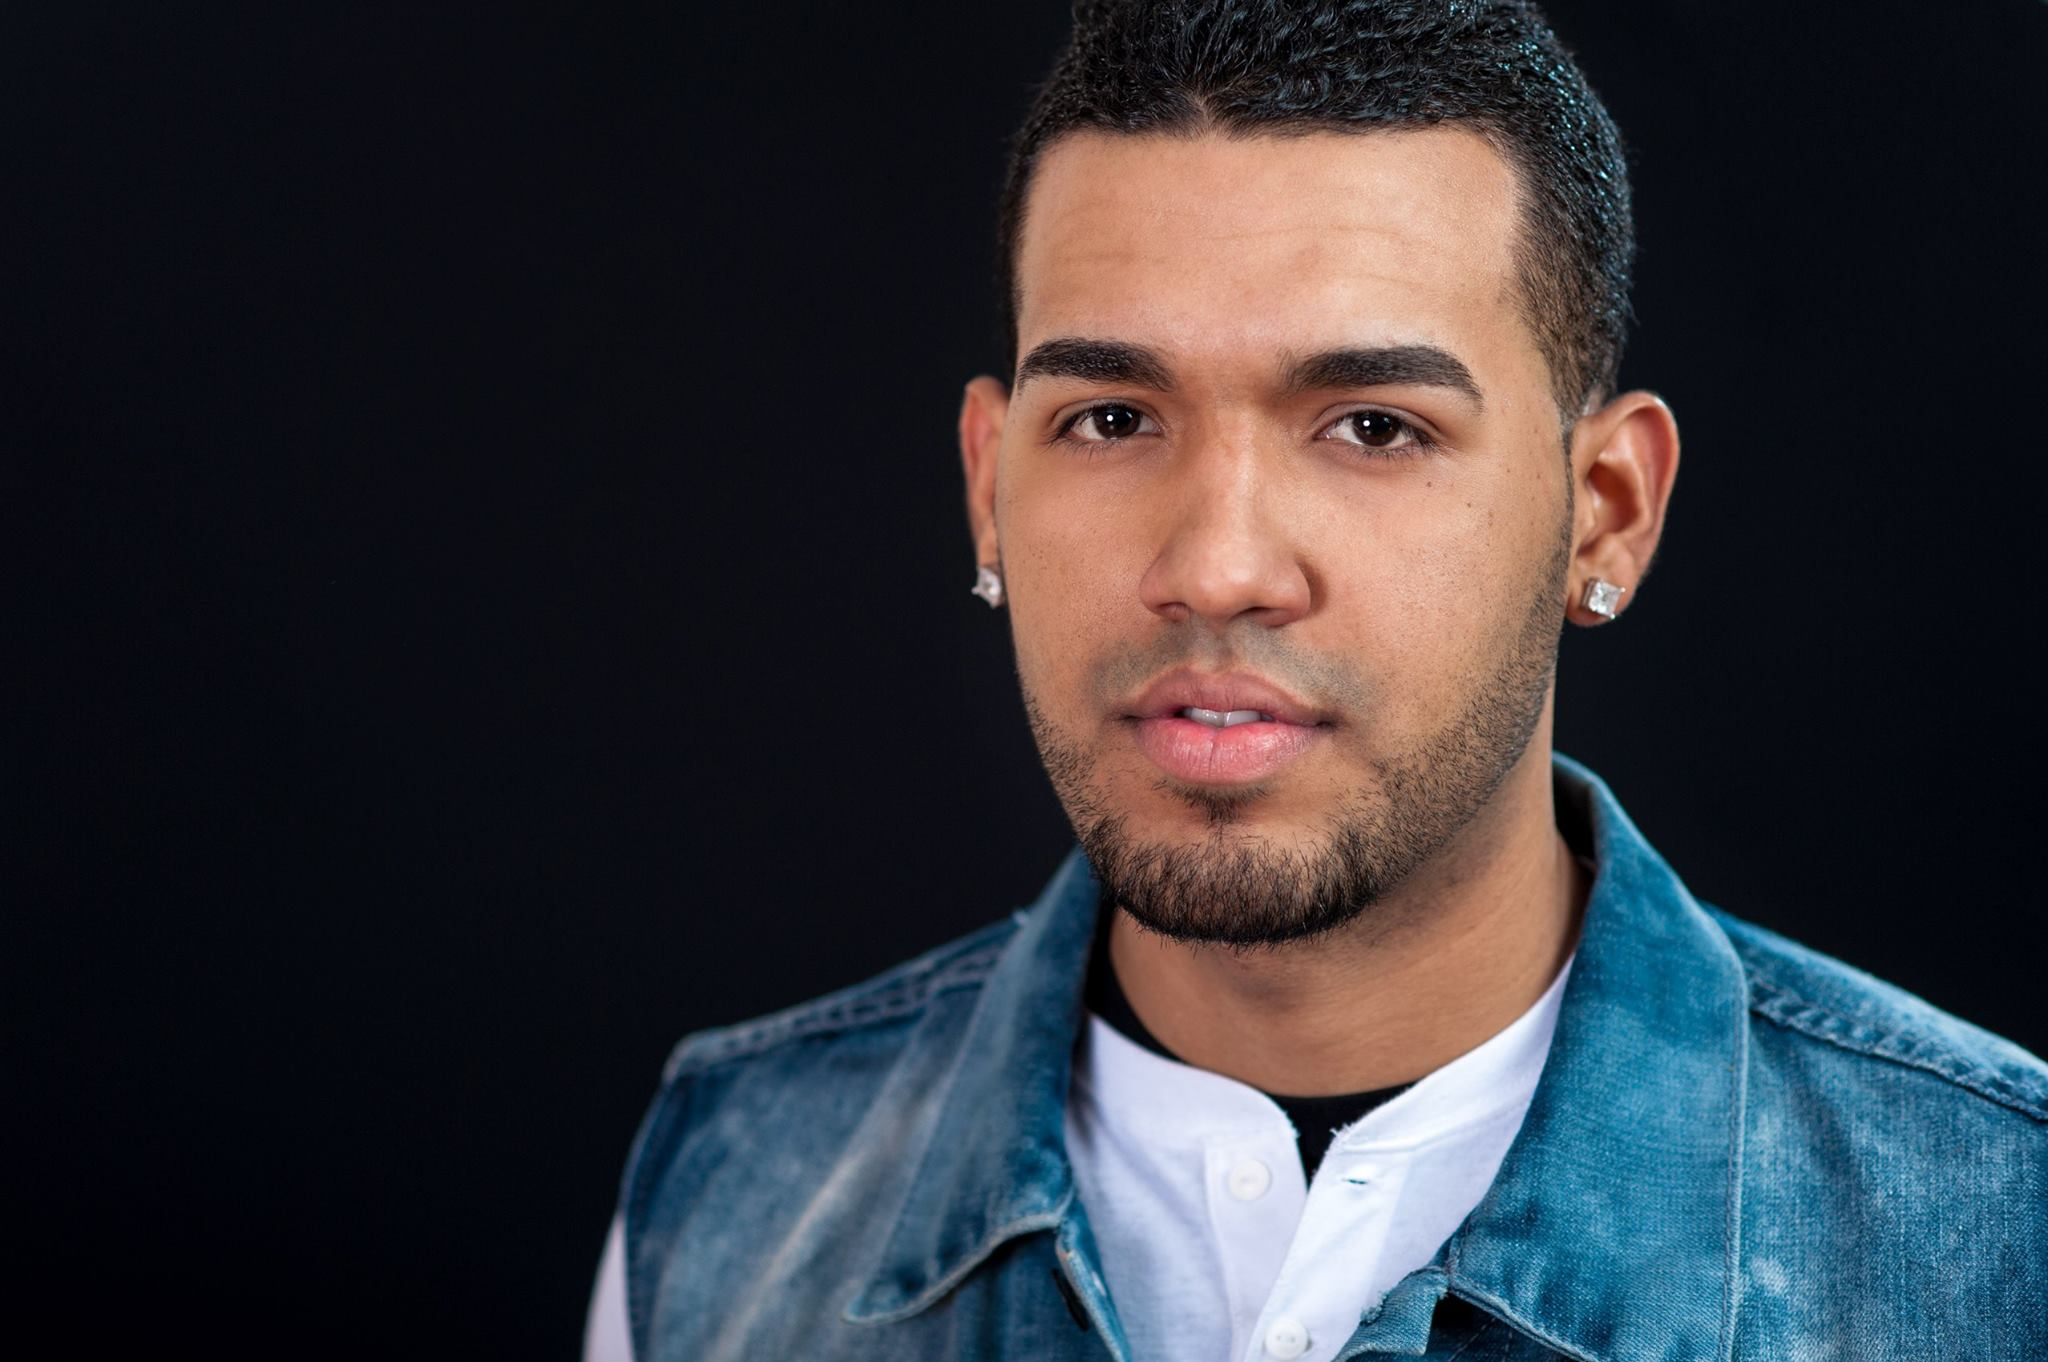 Luis  moved to Boston from Puerto Rico and has continued his success in dance. In addition to Latin dance, he is also a trained Hip-Hop dancer and choreographer. He has performed at a large variety of events including the Olympic Games of 2010 in Mayaguez, Puerto Rico, with artists like Olga Tañon, Wisin y Yandel, Tito el Bambino and Ana Isabel. He has also choreographed and performed in music videos with international artists Jowell y Randy and J-Alvarez.